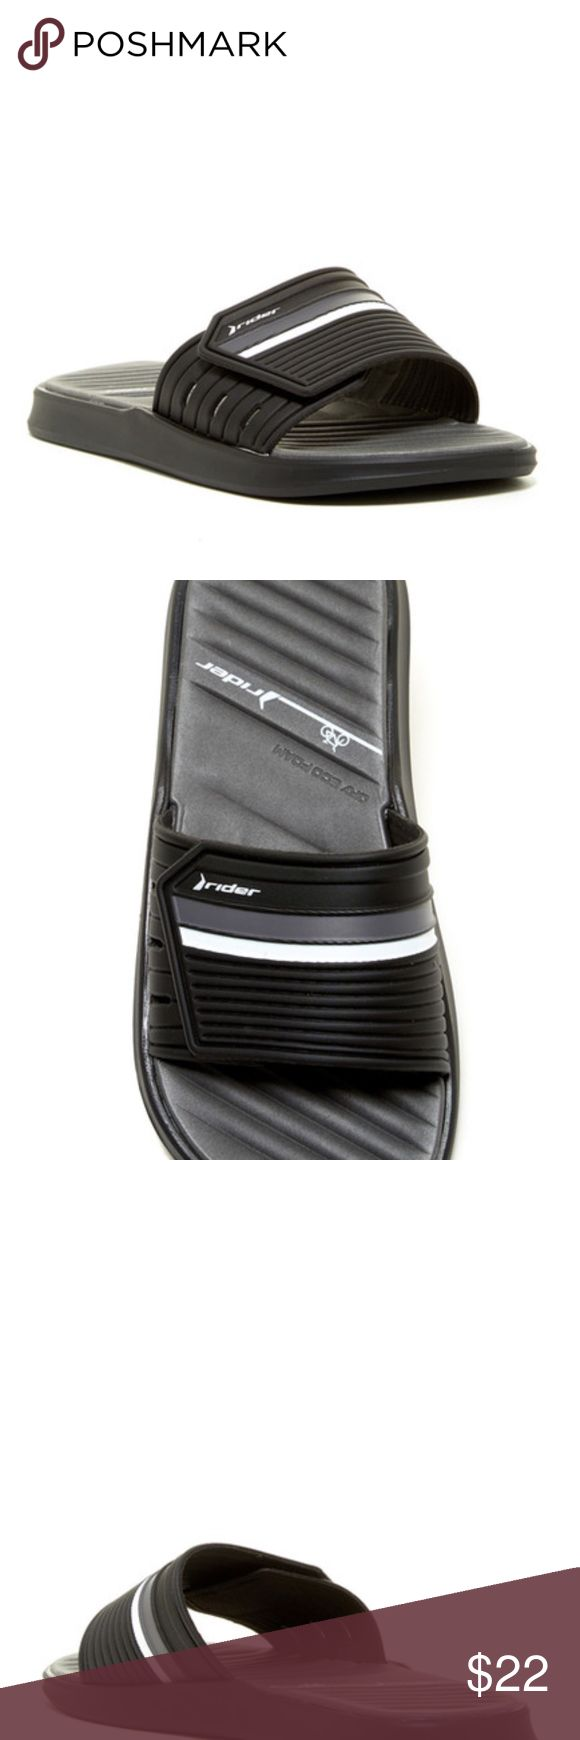 Men's Rider slide sandal size 11 Black Gray NEW IN BOX, SUPER SOFT INSIDE  Sizing: Whole sizes only; for 1/2 sizes order next size up.  - Open toe - velcro strap closure - Dry-Eco foam footbed - Slip-on - Grip sole - Imported Rider Shoes Sandals & Flip-Flops